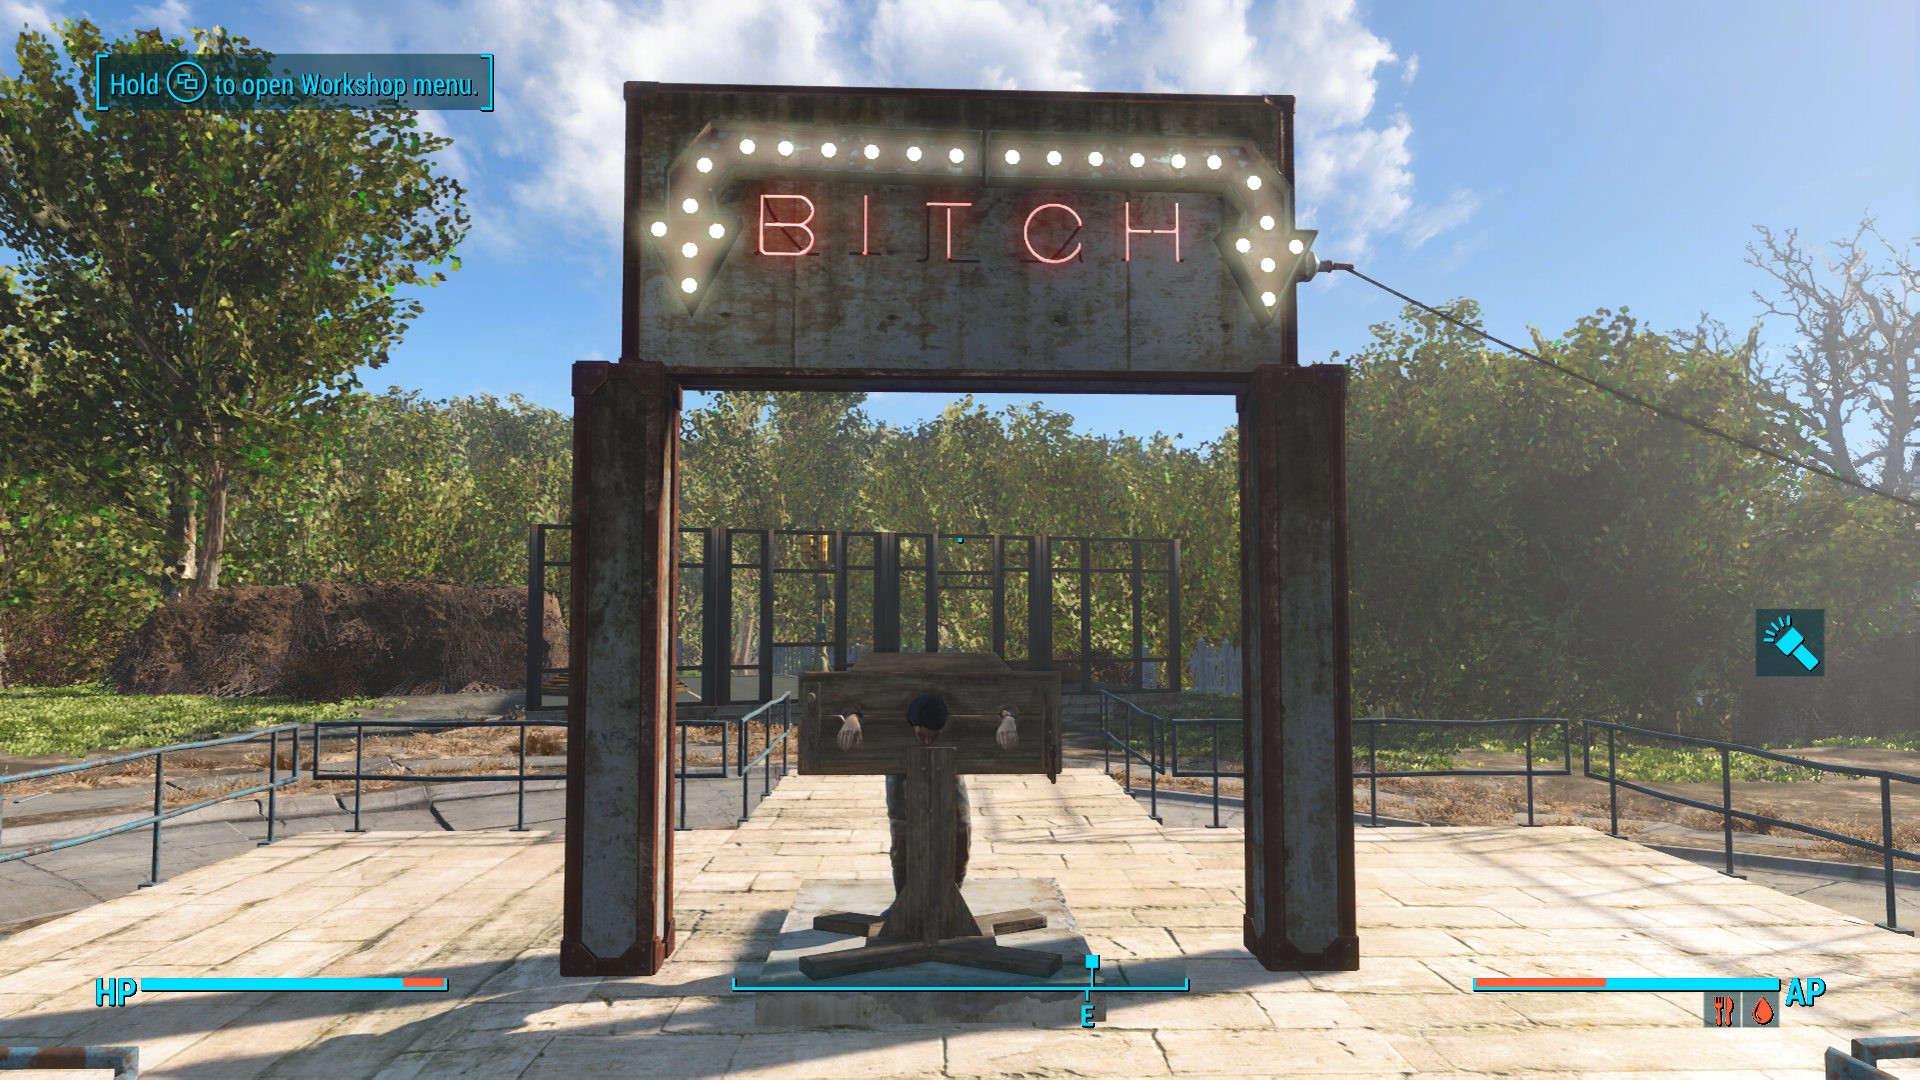 Can T Believe I Never Thought To Put Marcy Long In This Thing Fallout4 Gaming Fallout Bethesda Game Fallout 4 Settlement Ideas Fallout Settlement Fallout